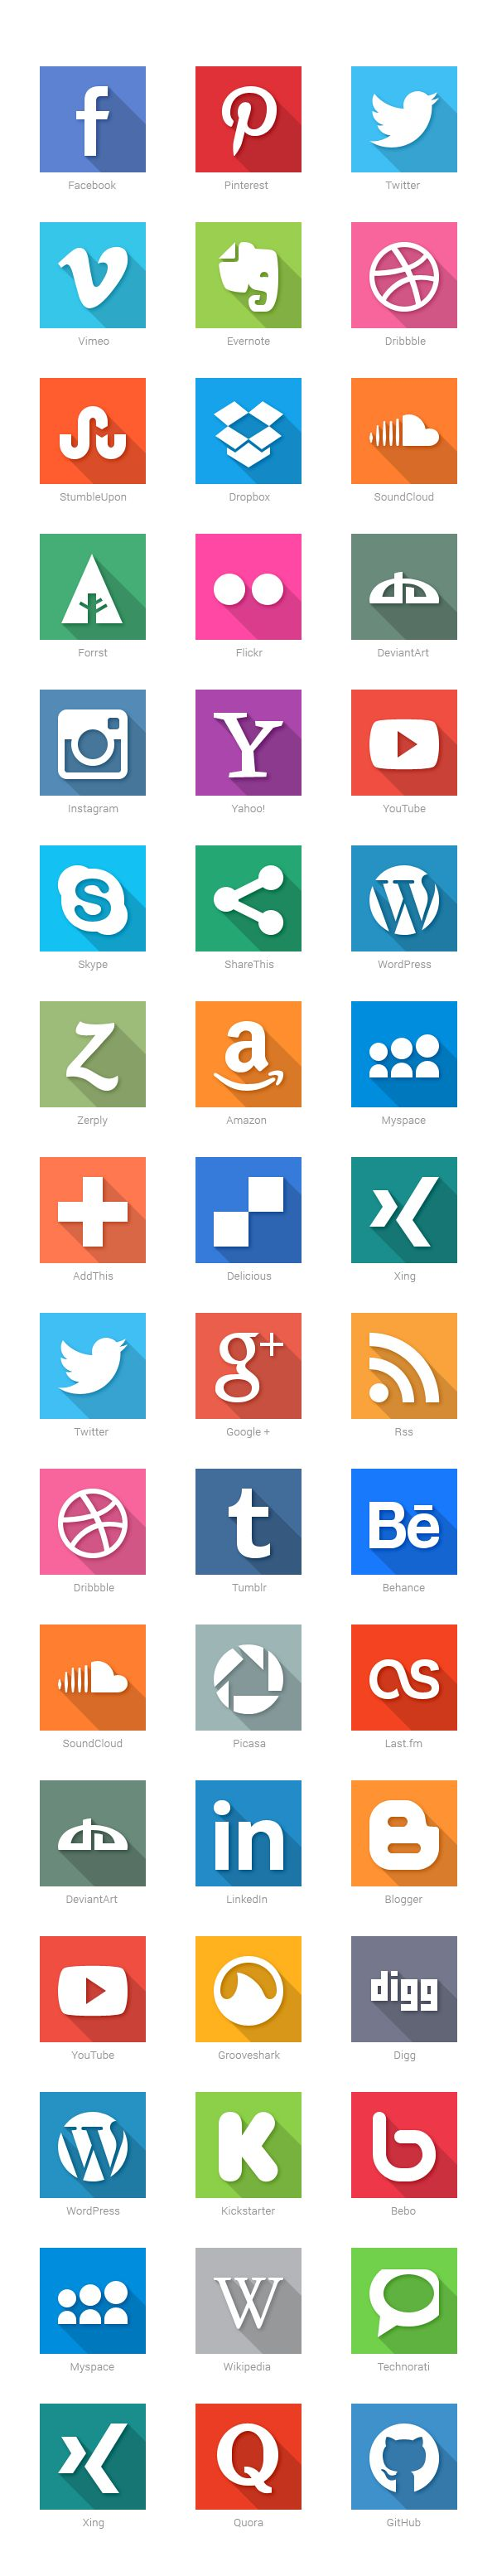 40 Social Media Flat Icons by GraphicBurger , via Behance